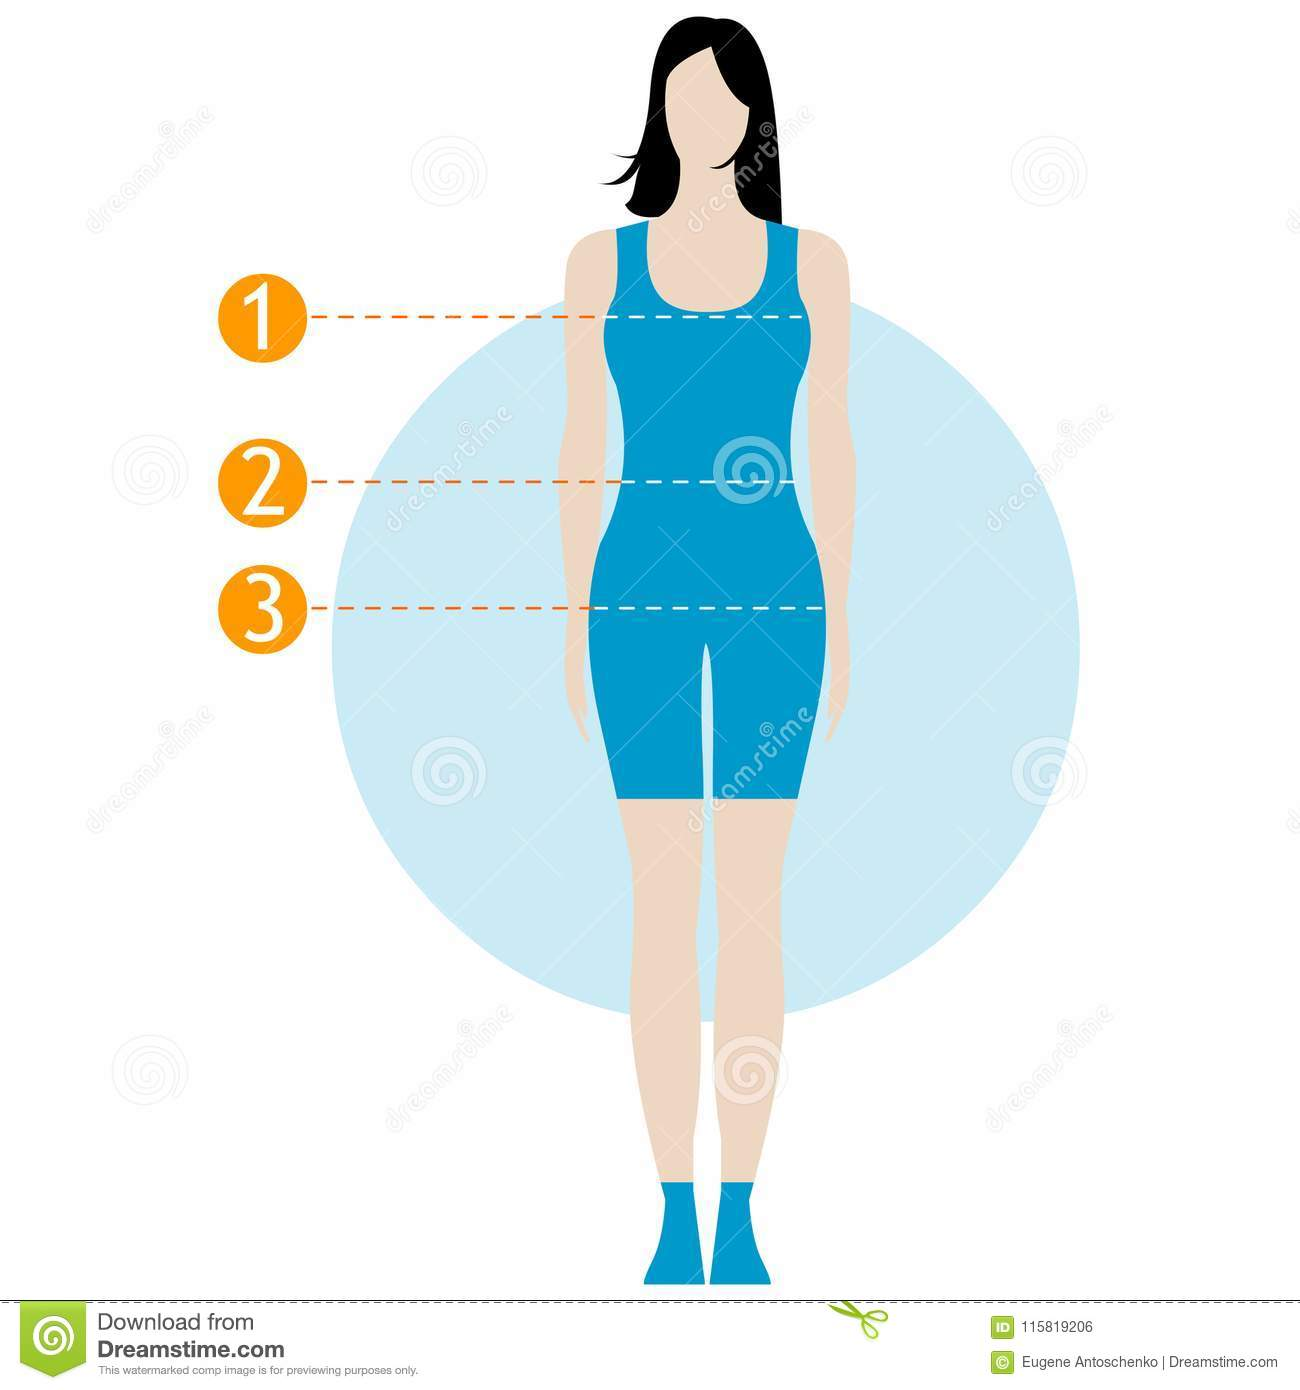 Female Body Measurement Chart Figure Of The Girl Model In Underwear Swimwear Template For Sewing Fitness Work Out Healthy Stock Illustration Illustration Of Determine Infographic 115819206